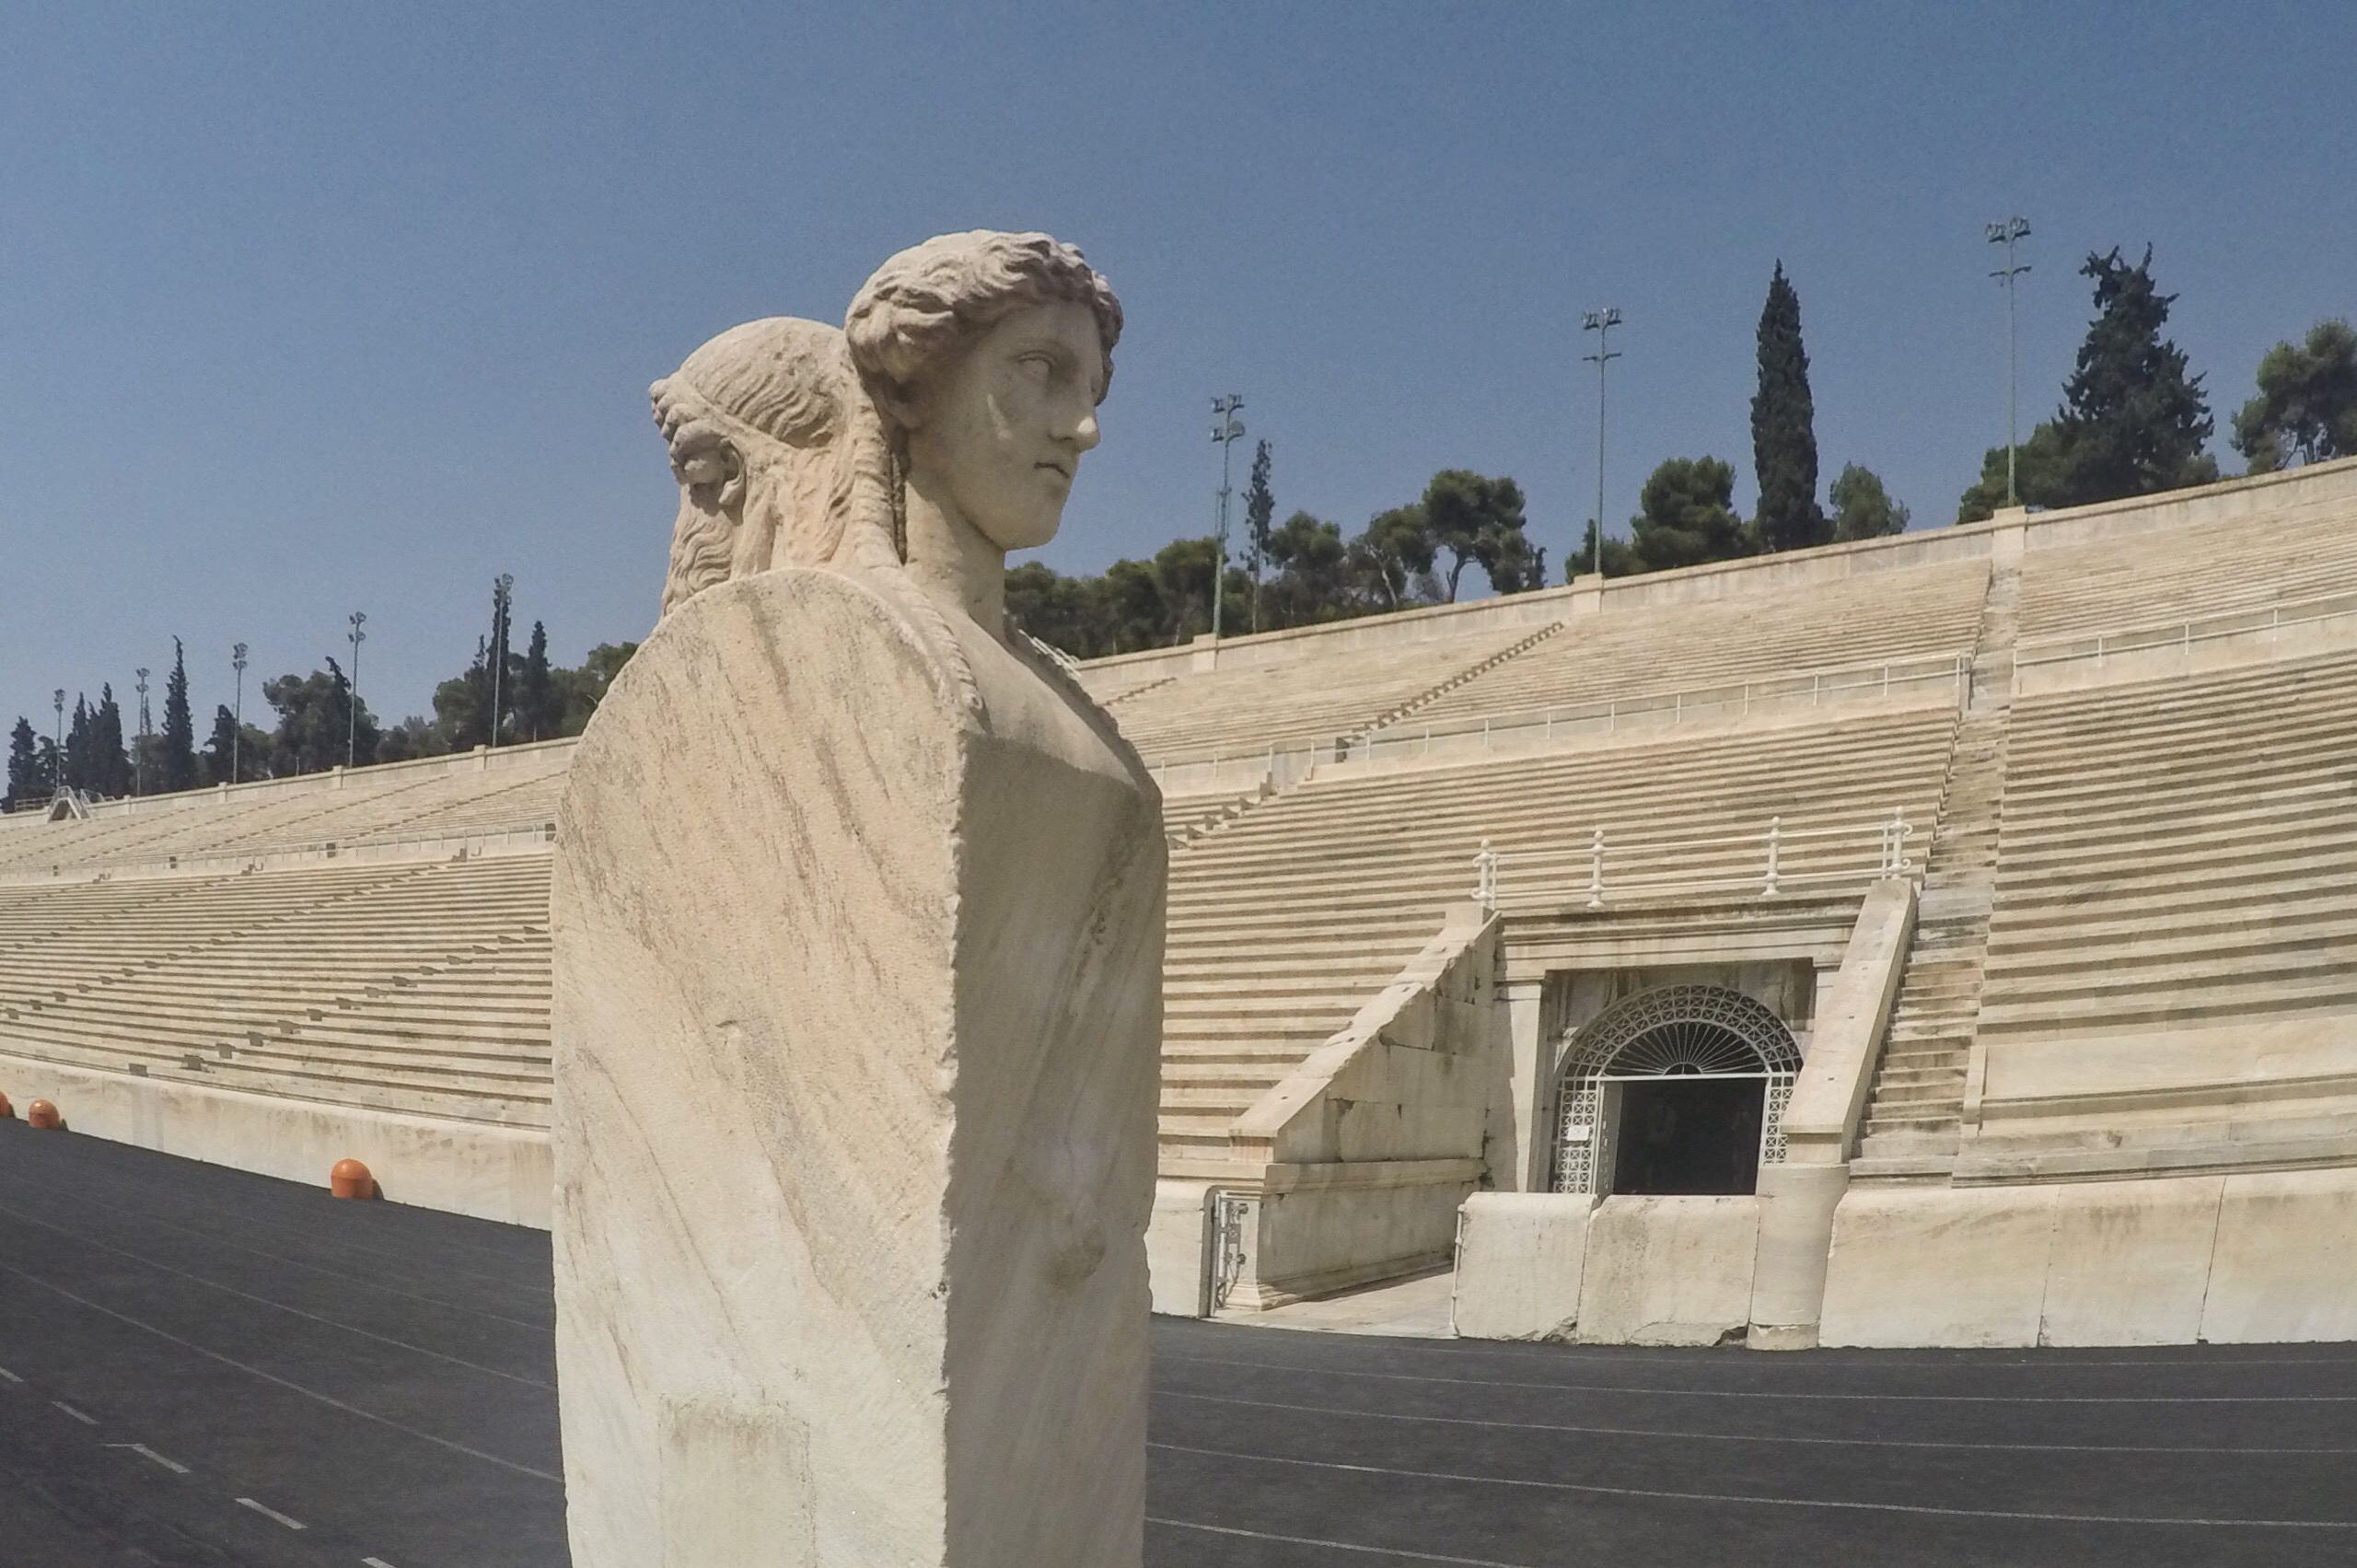 athens and the first olympic stadium � the active me